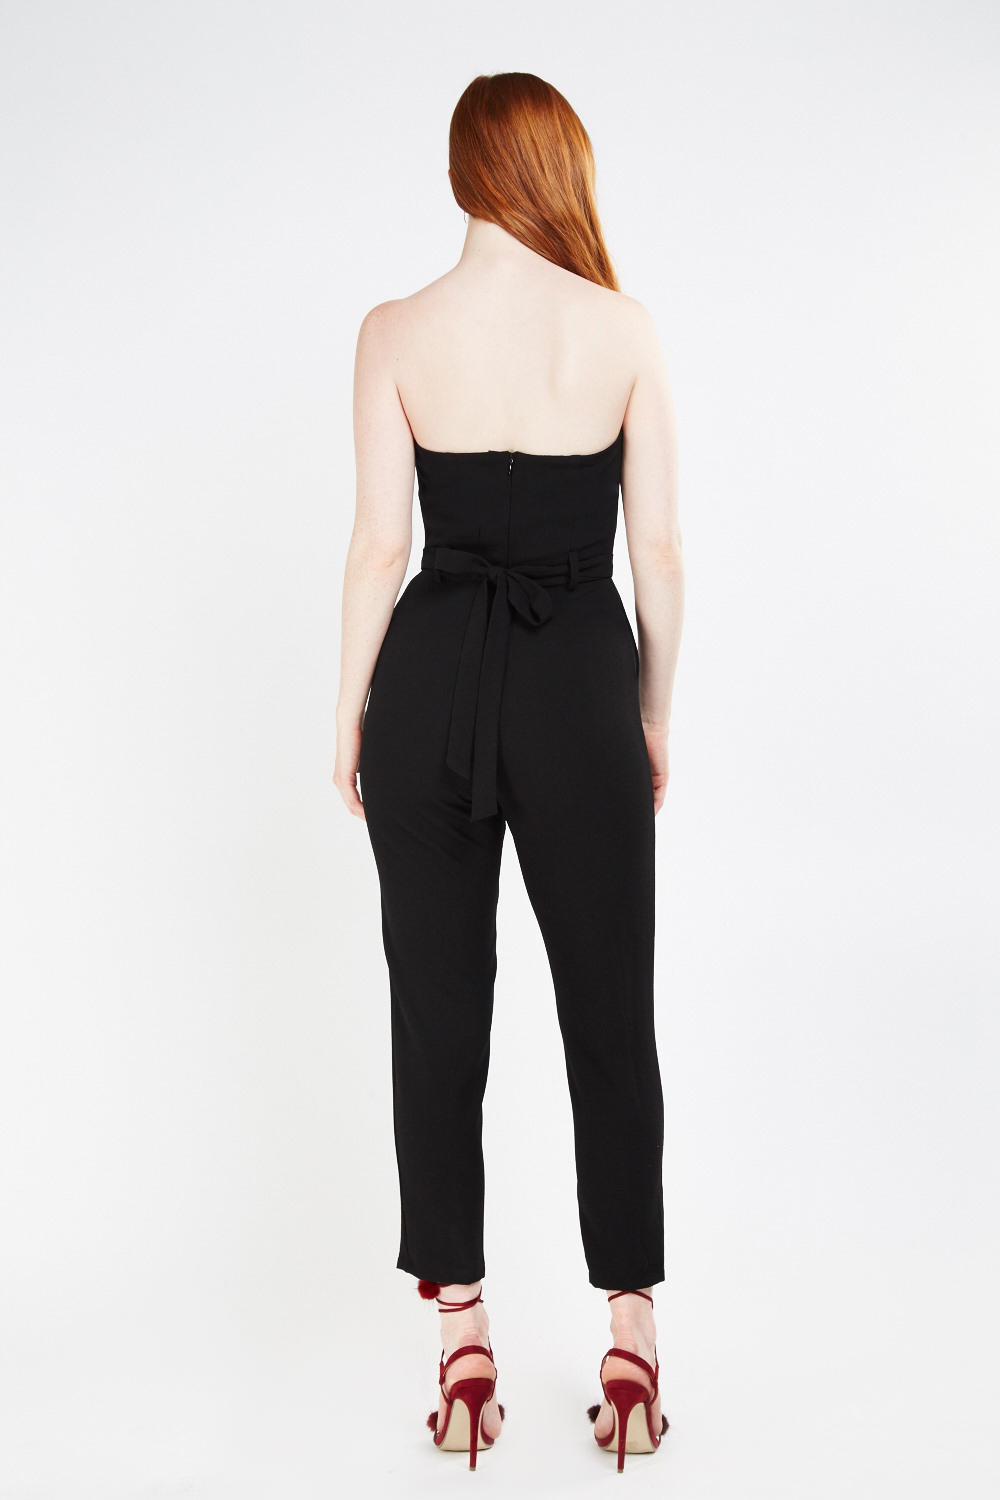 b1a08c6c19a2 Bandeau Skinny Sweetheart Jumpsuit. Click on the image to zoom